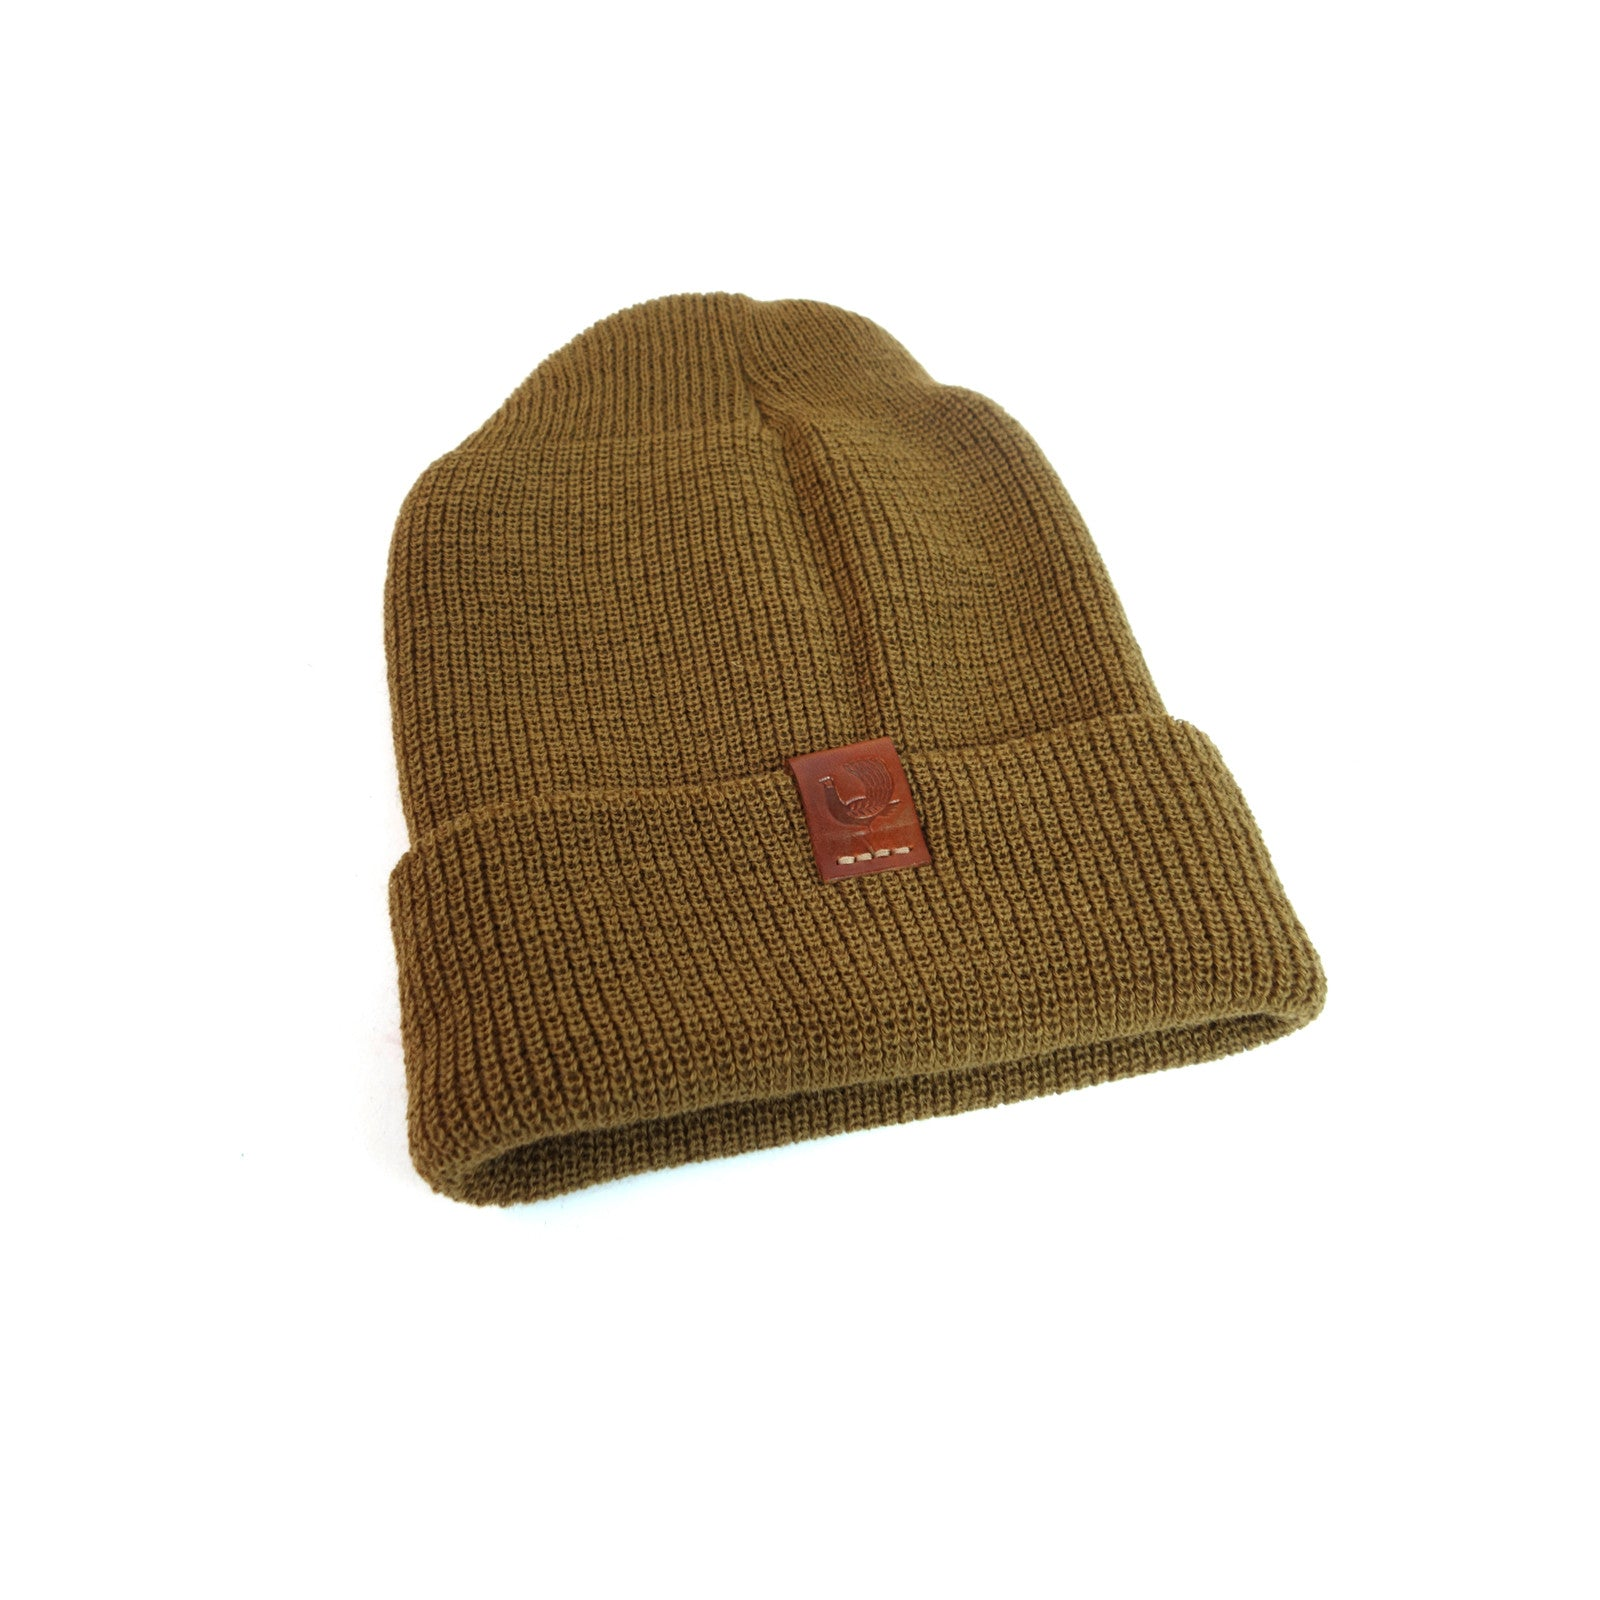 Wool Watch Cap - Coyote - Red Clouds Collective - Made in the USA 133dca2639f